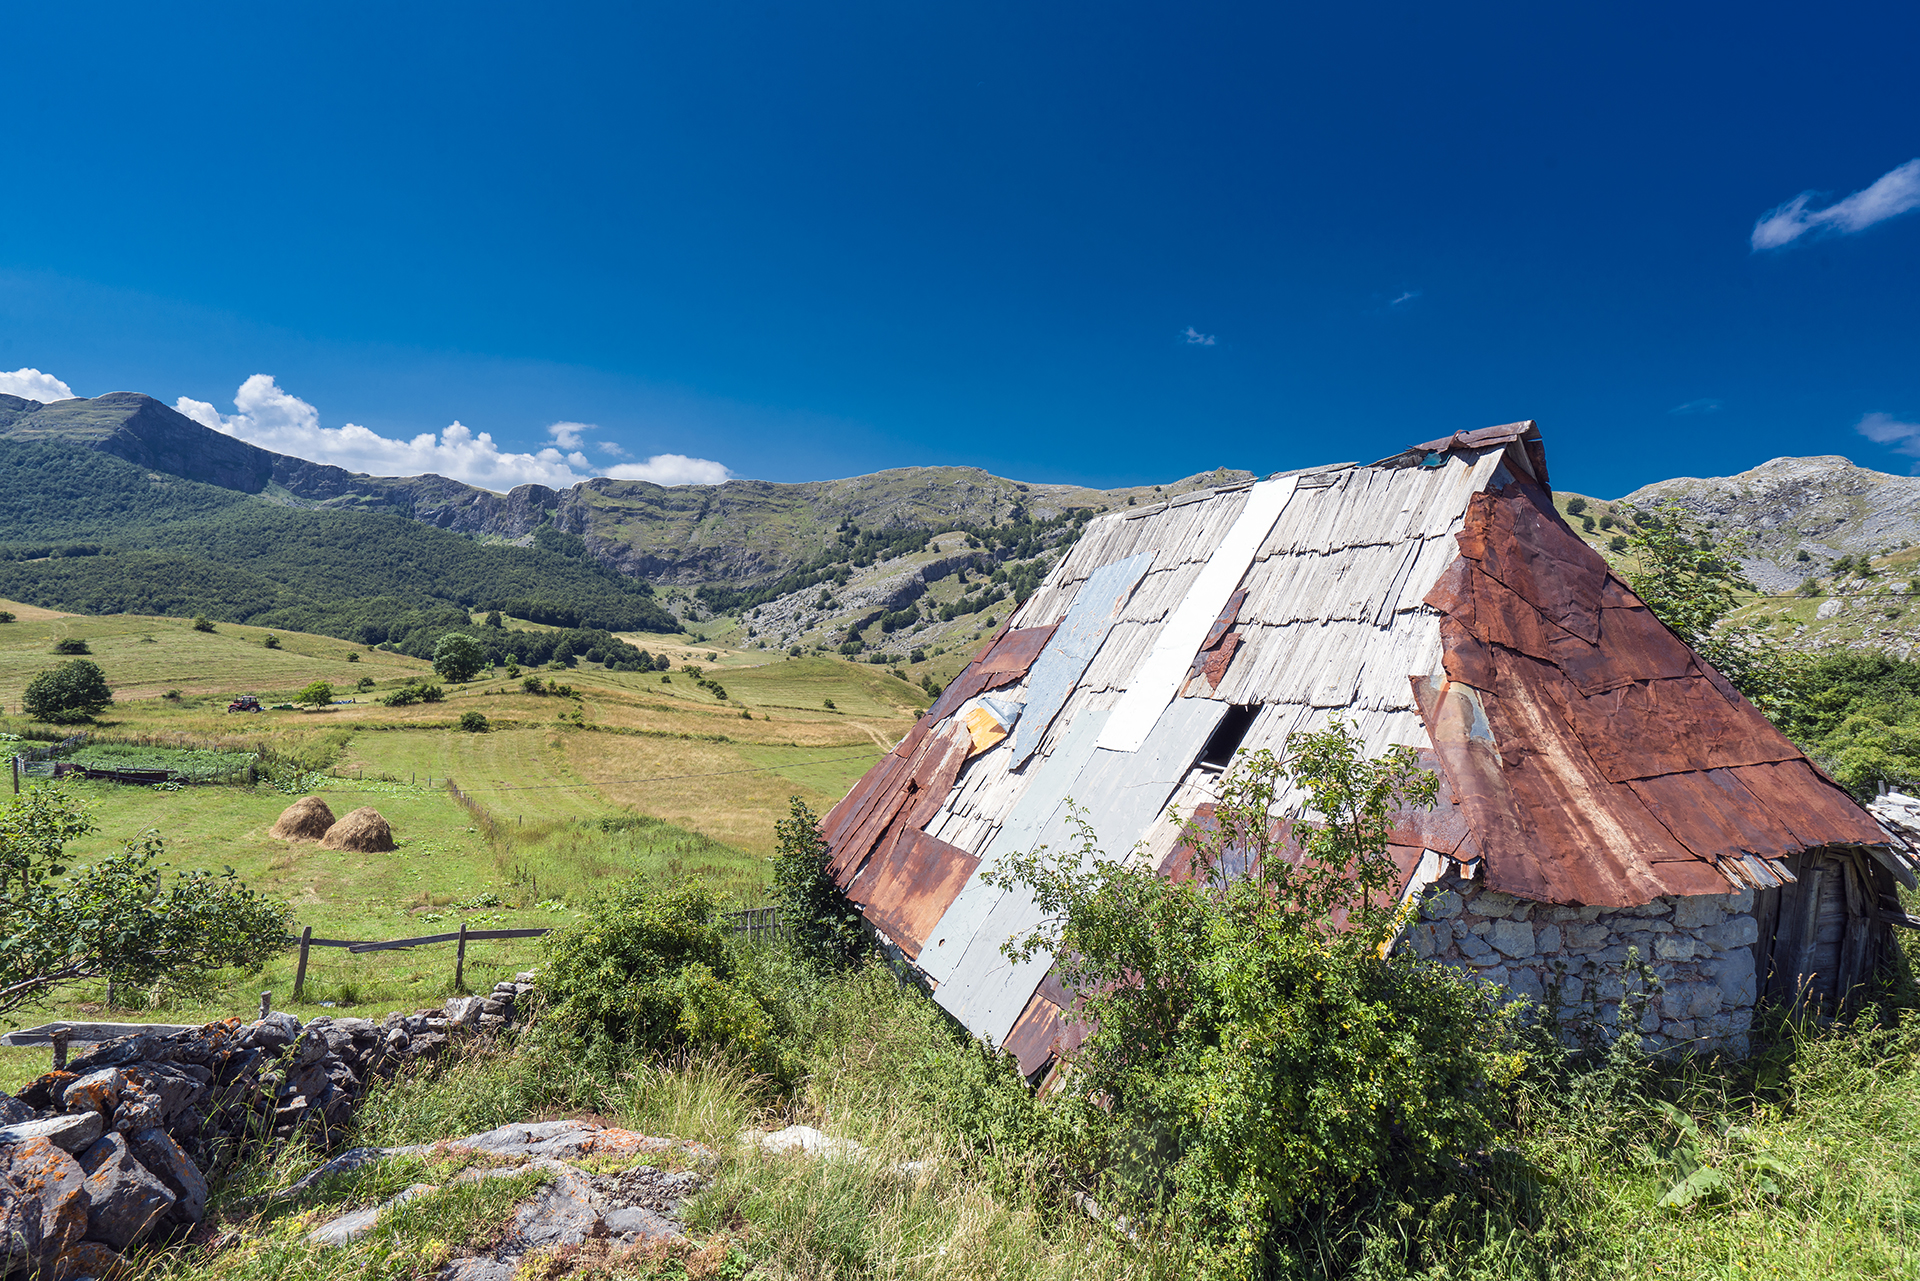 View of a traditional village in the Bosnian highlands